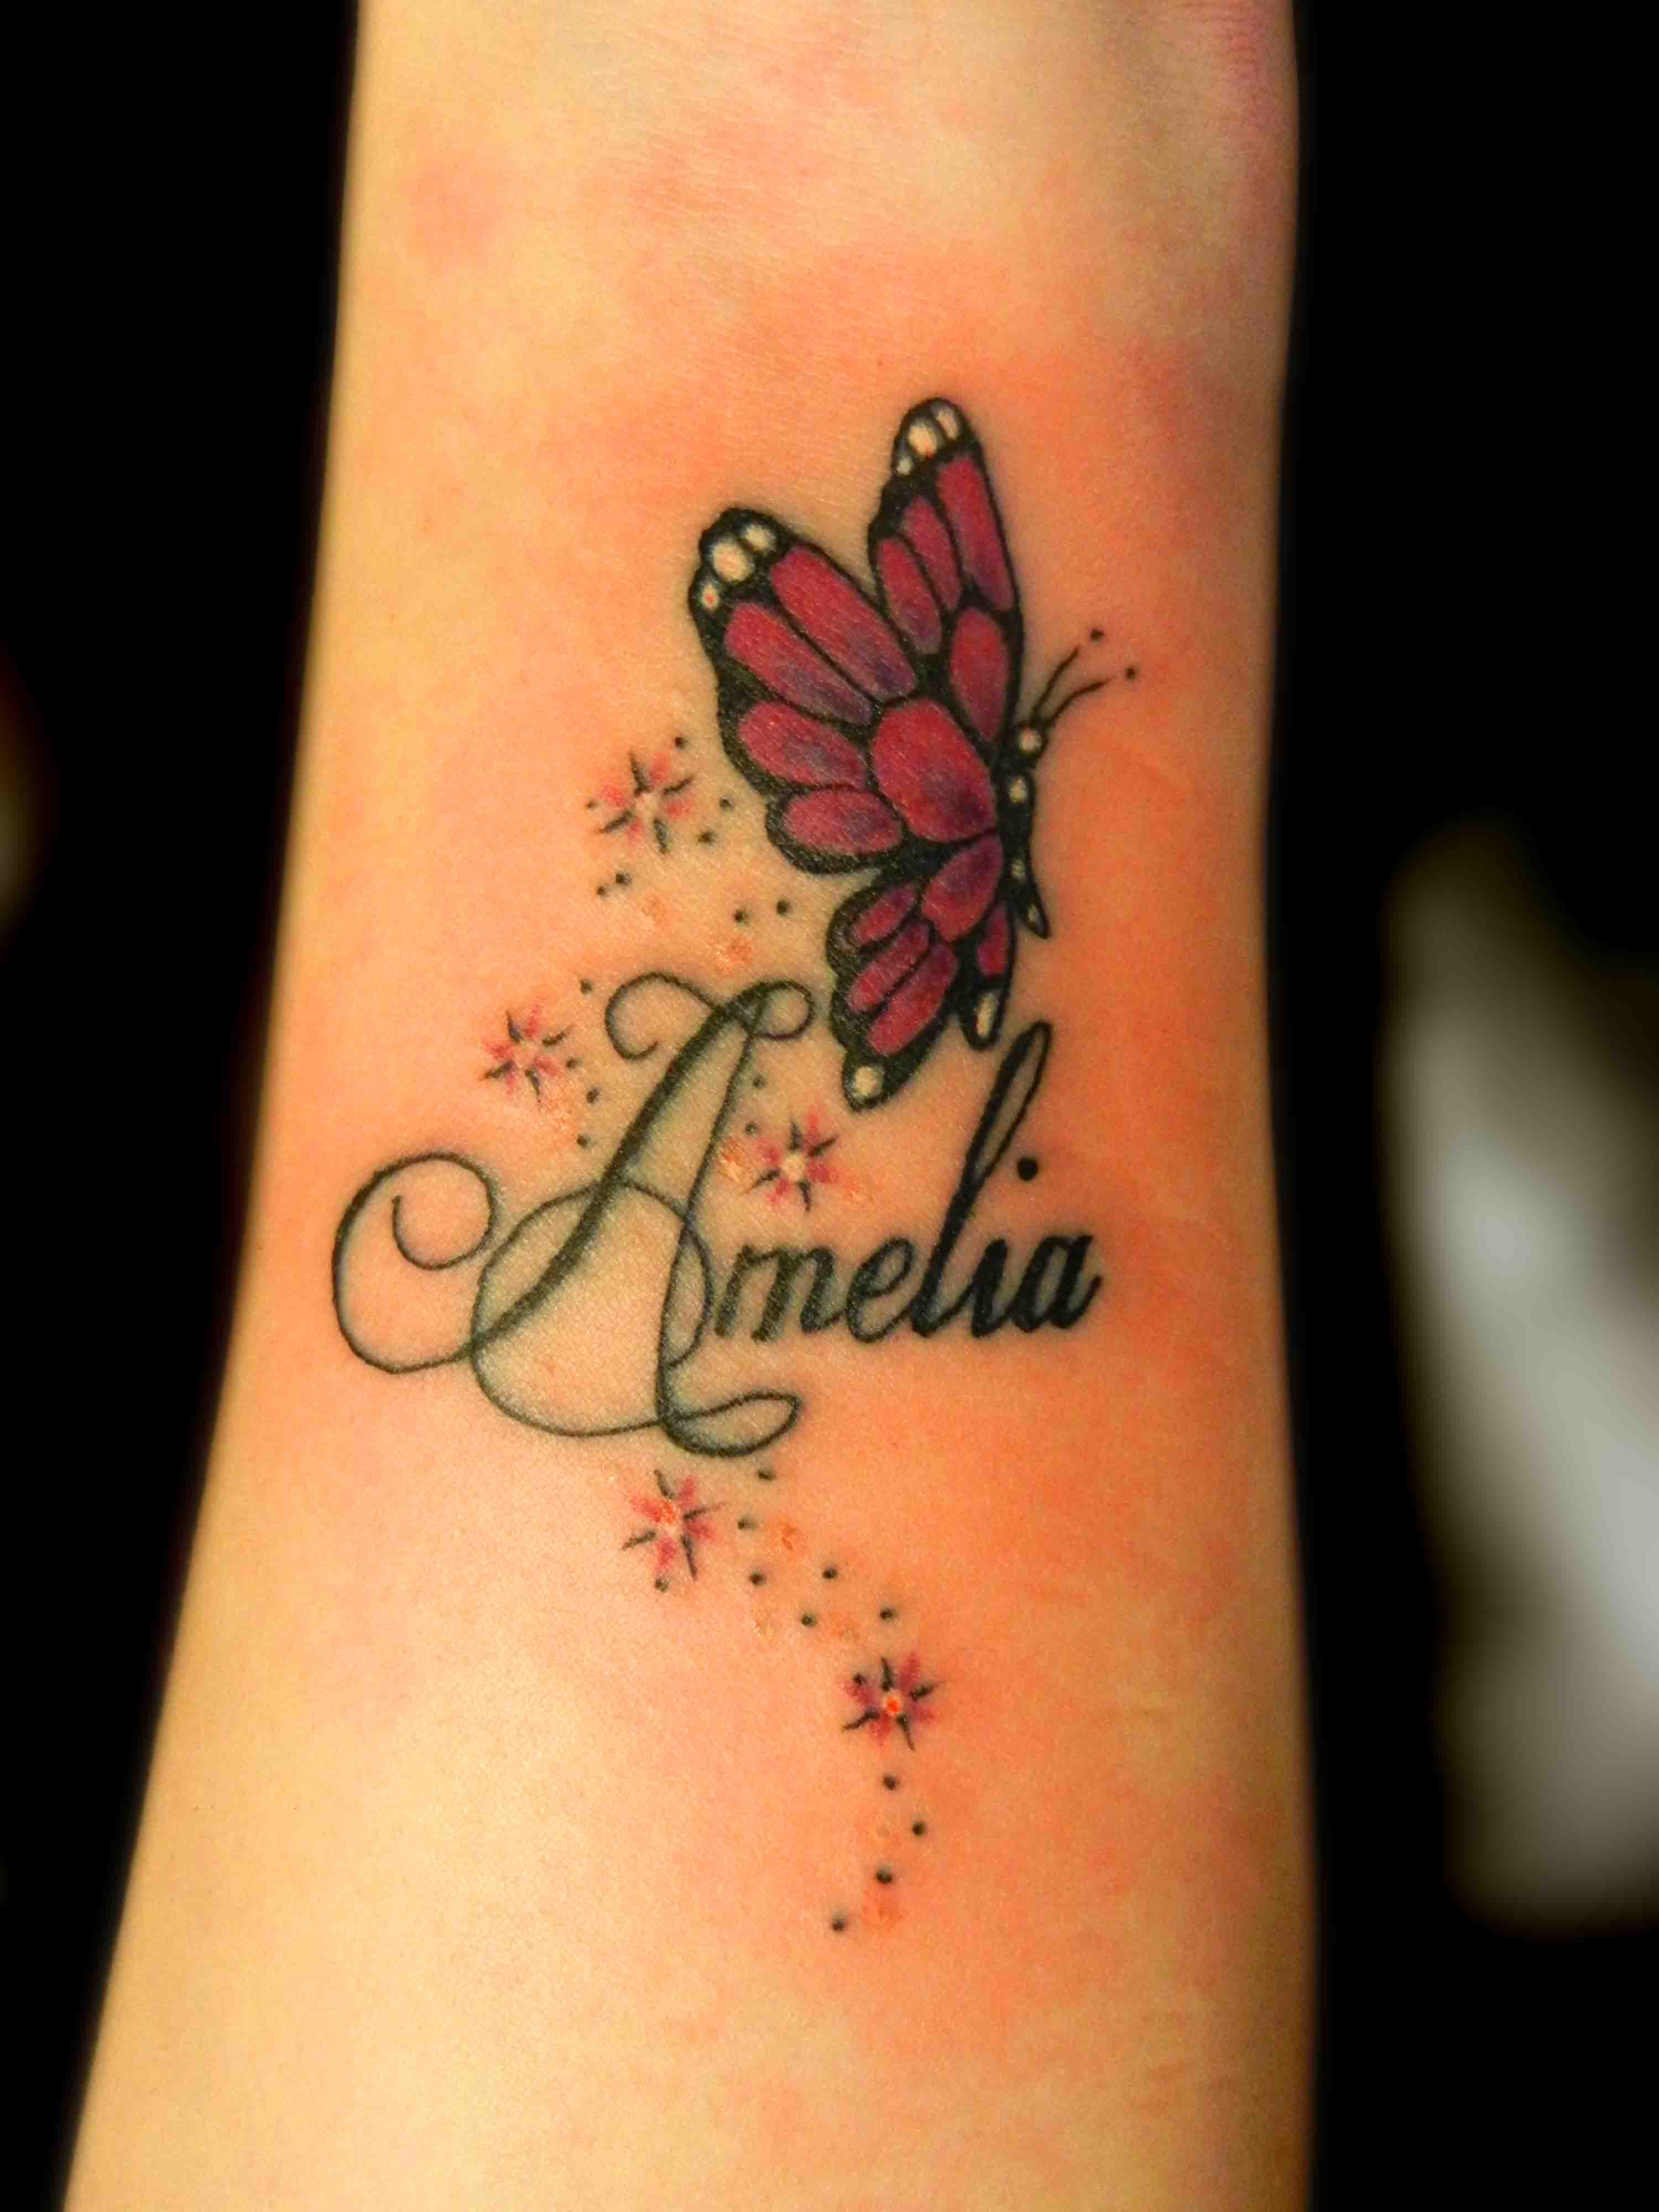 Butterfly Tattoo Names And Stars Twinkles Girly Wrist